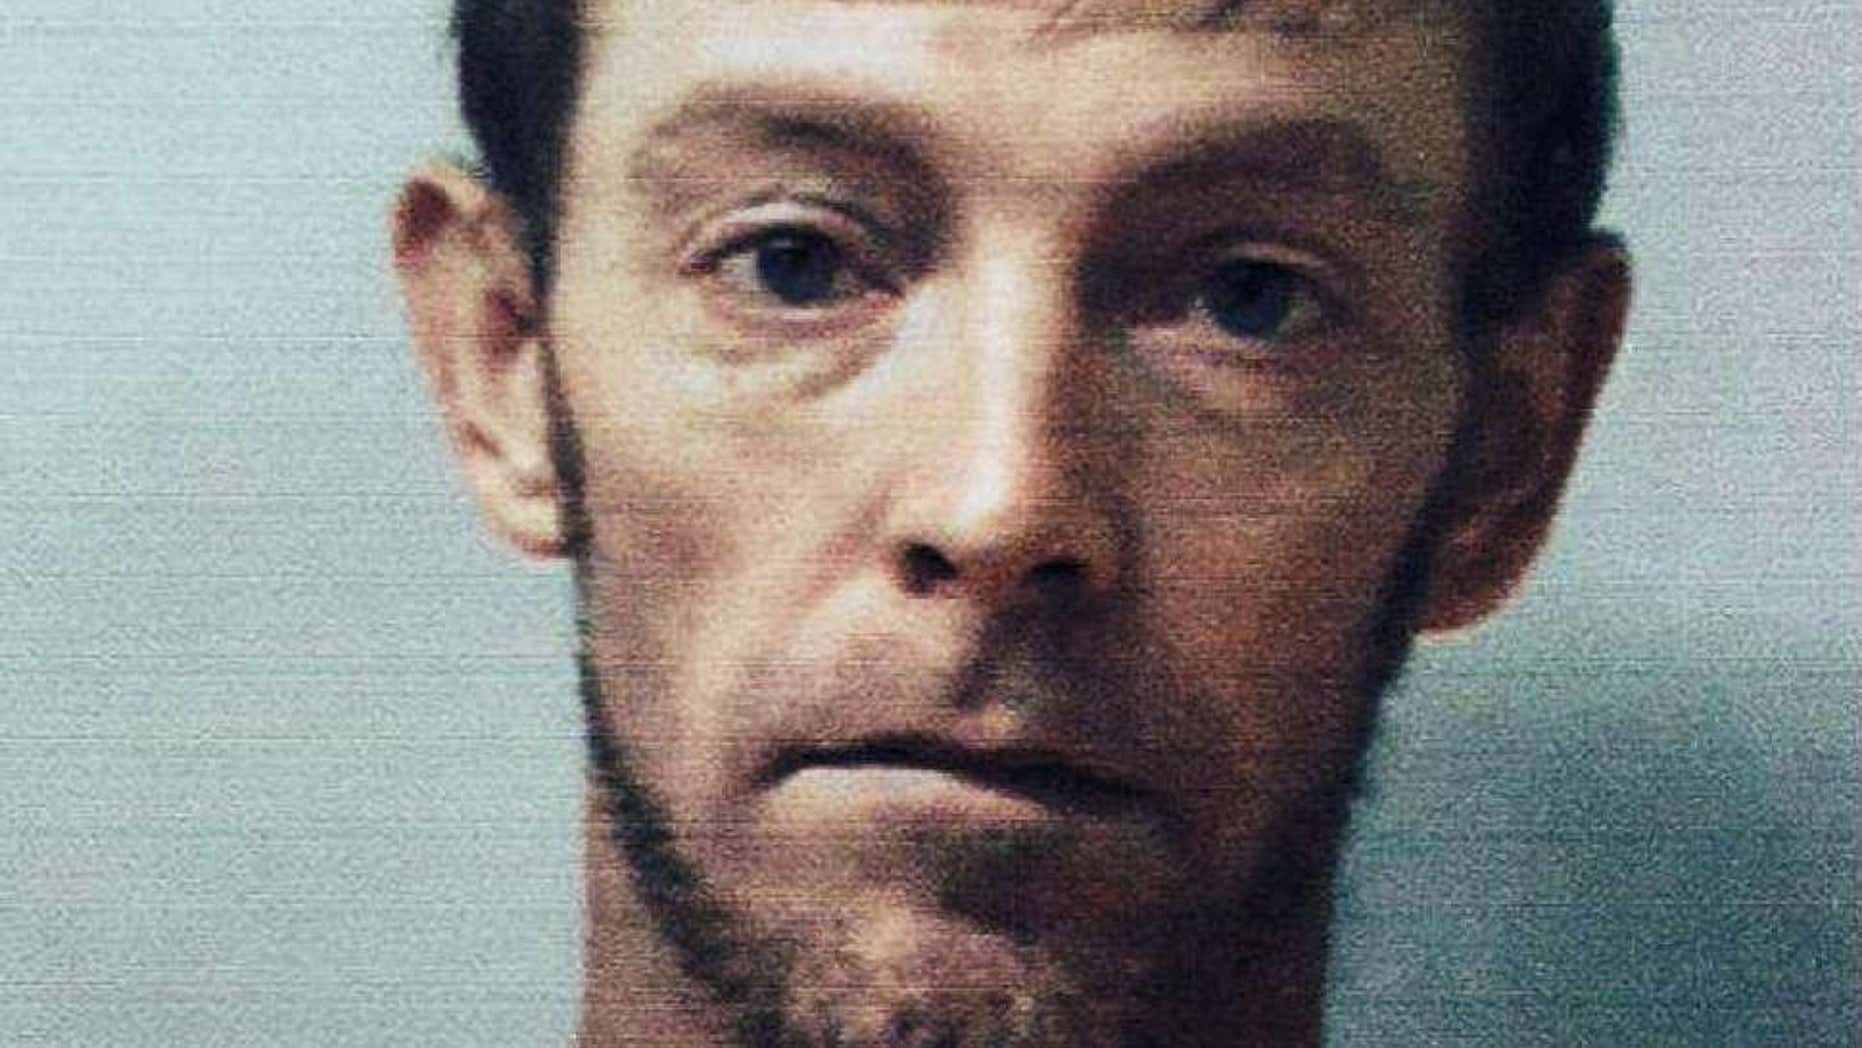 July 31, 2015: Pennsylvania police searching for escaped inmate Robert Crissman, 38.